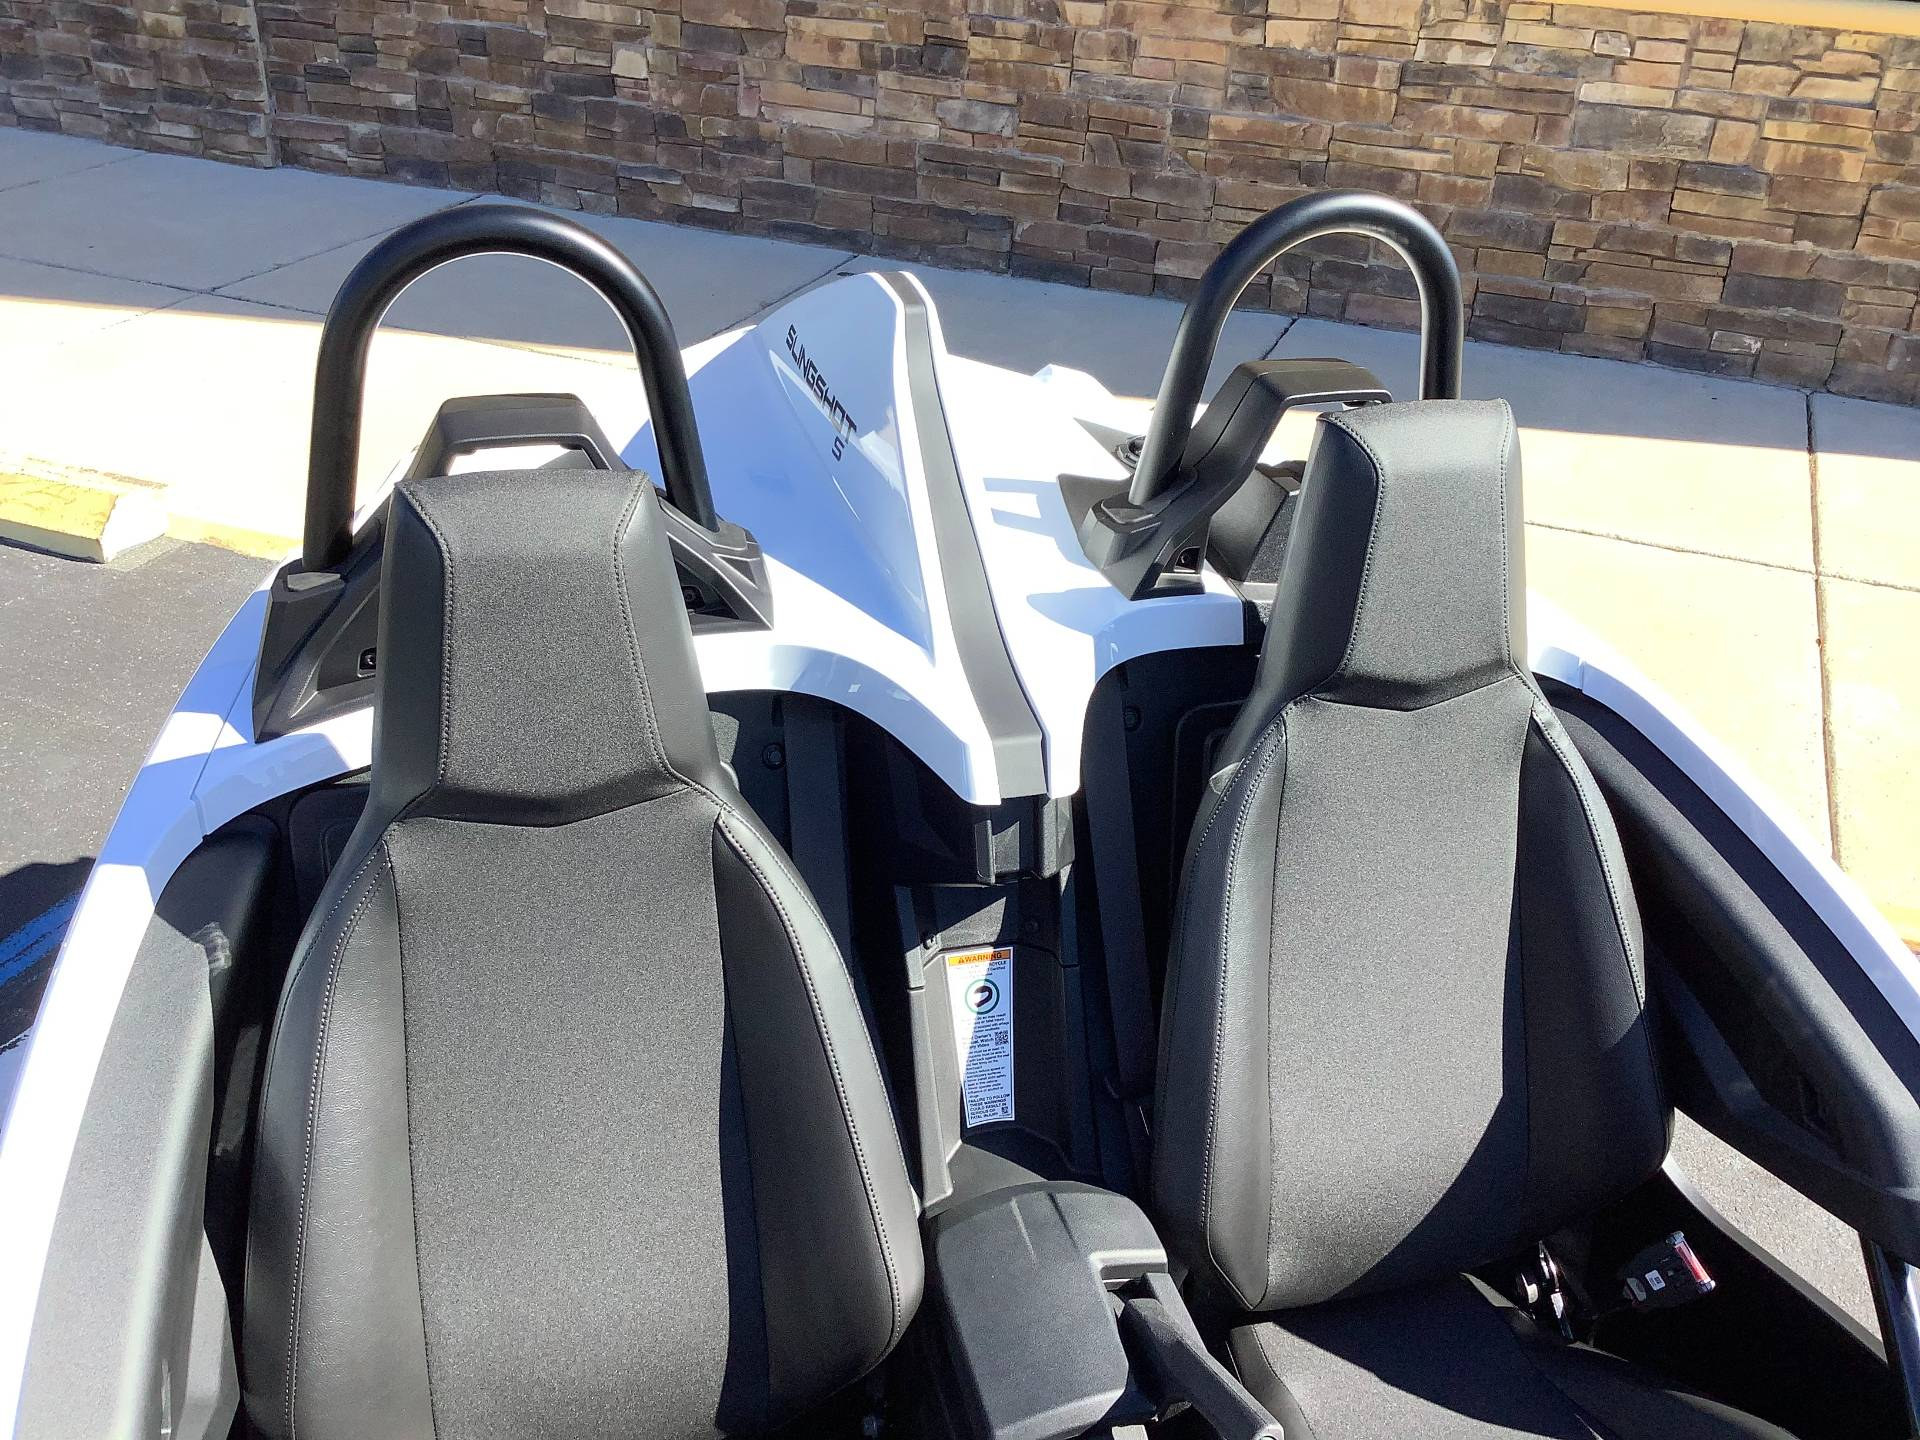 2021 Polaris SLINGSHOT S TECH PACKAGE 1 in Panama City Beach, Florida - Photo 10